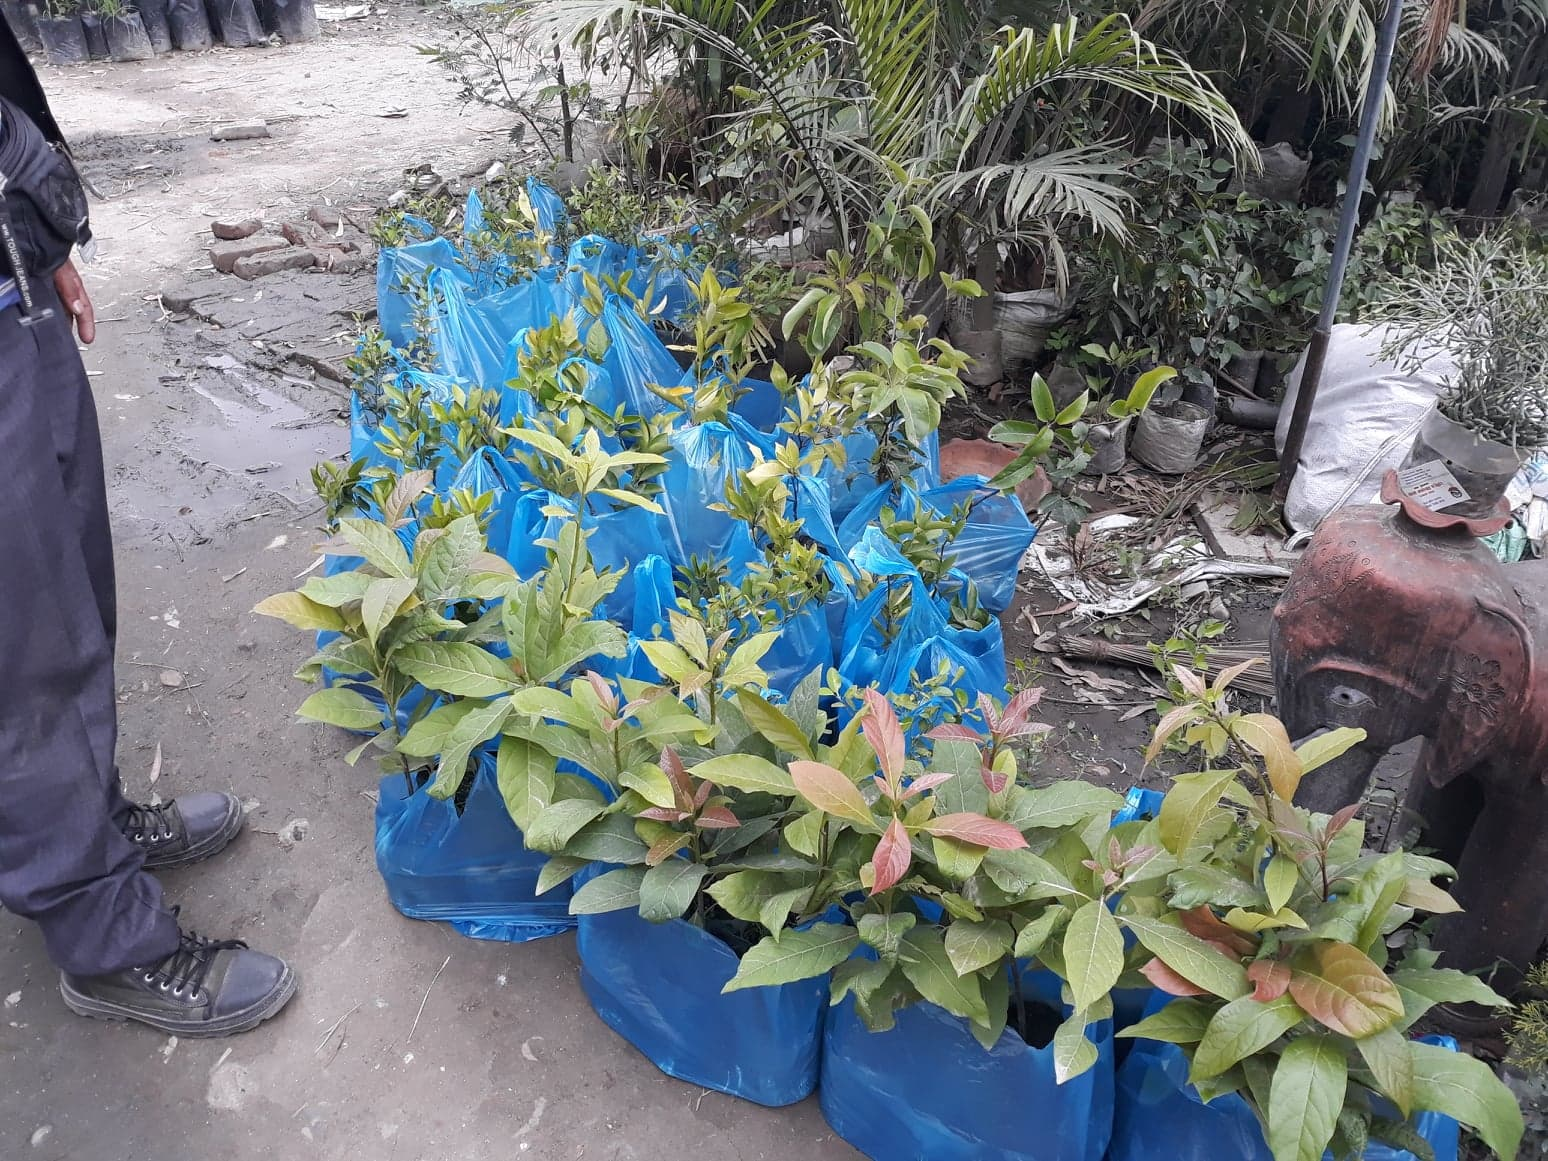 - Plants waiting to be collected